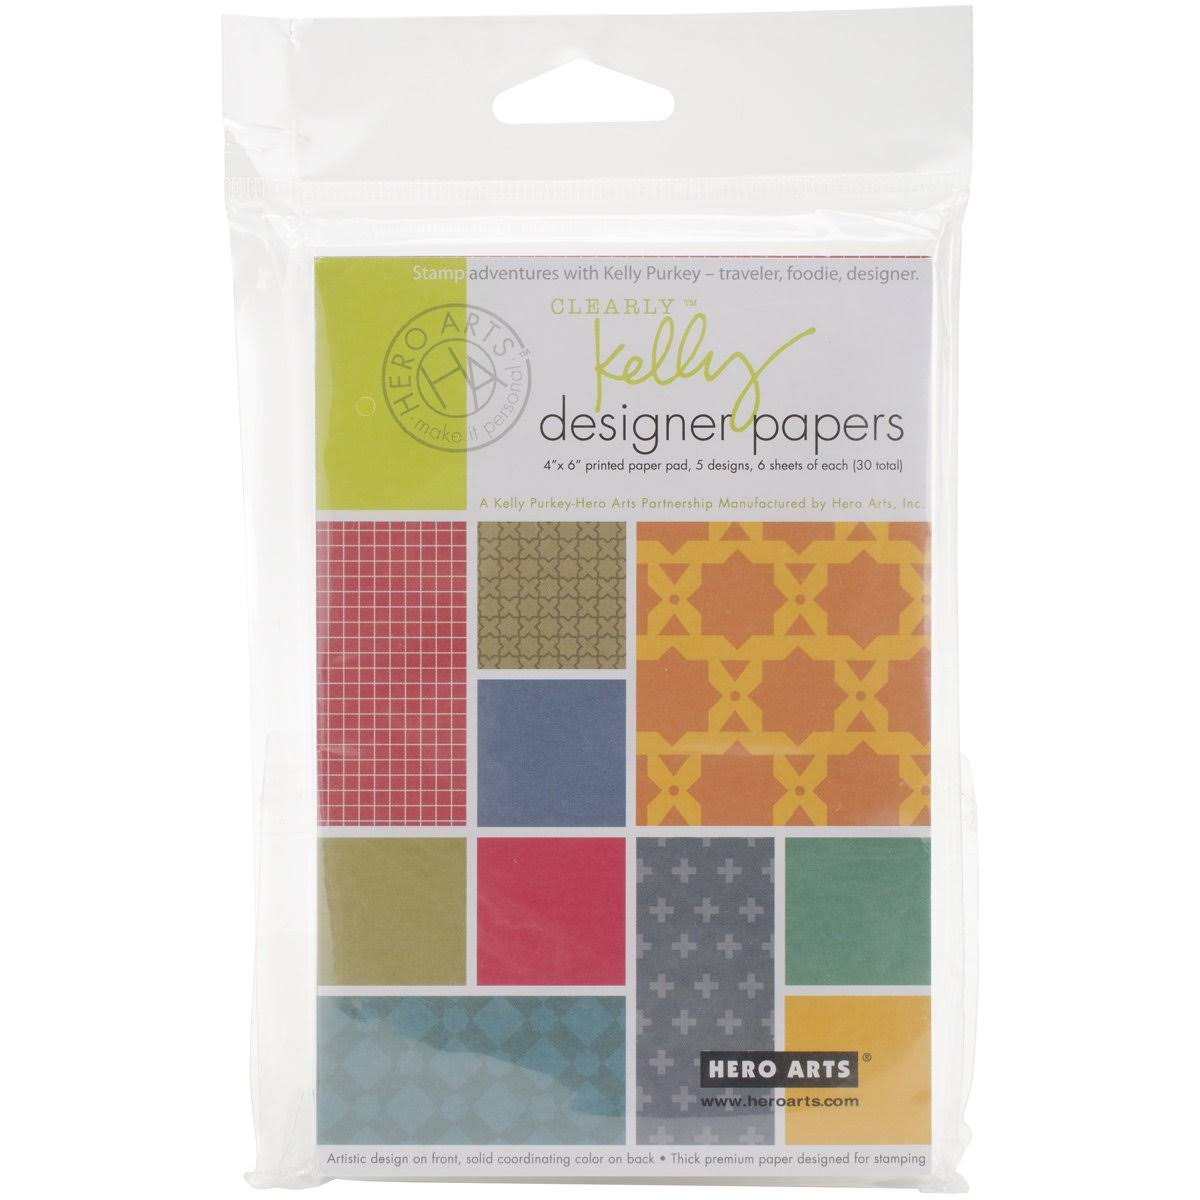 Hero Arts Designer Paper Pad Clearly Kelly 4x6